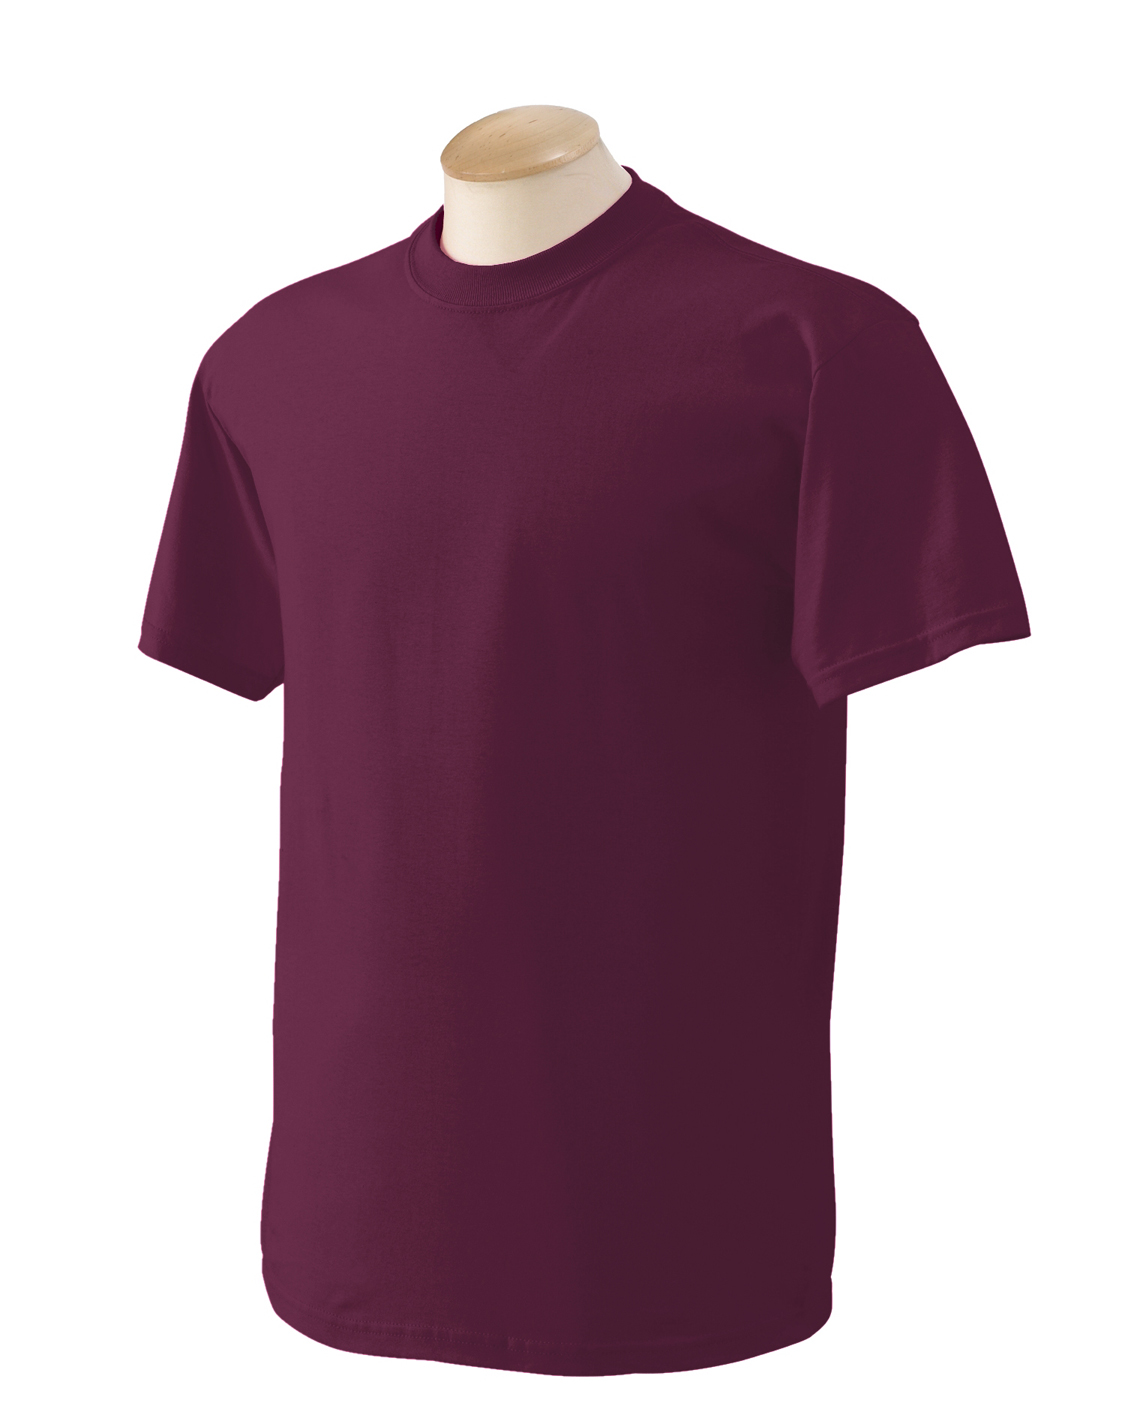 Gildan G500 5.3 oz. Heavy Cotton T